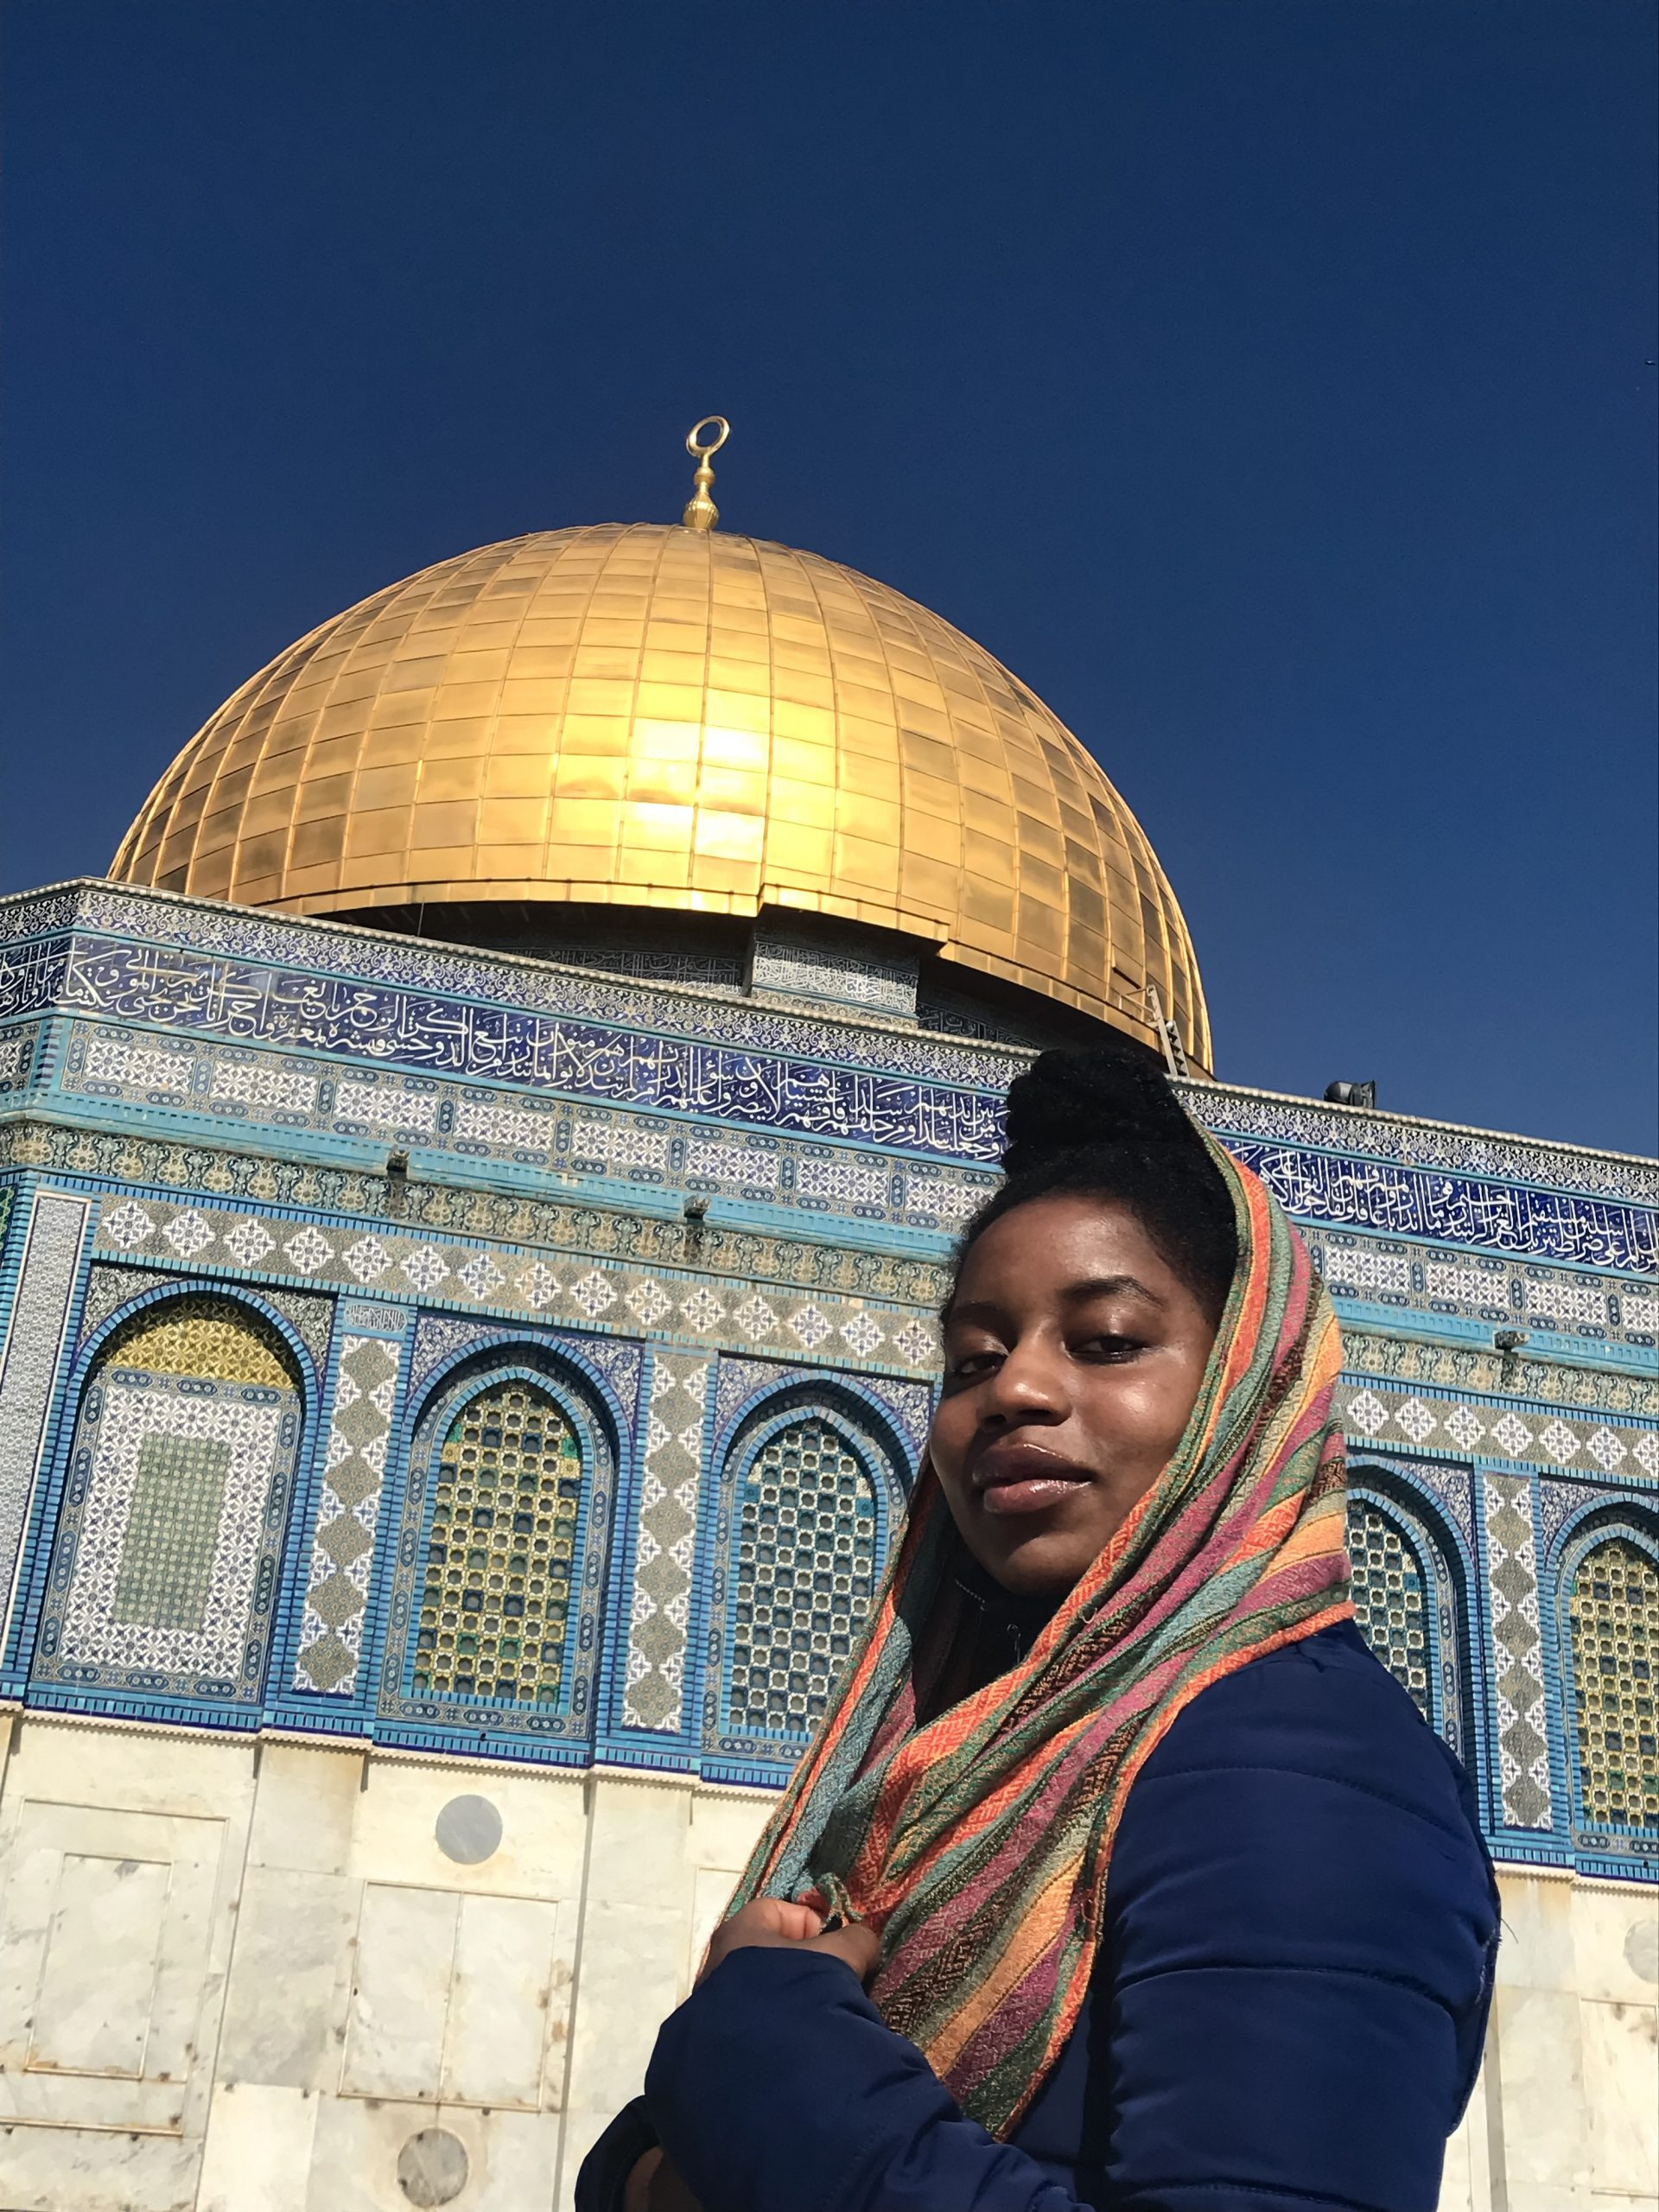 Me at the Dome of the Rock